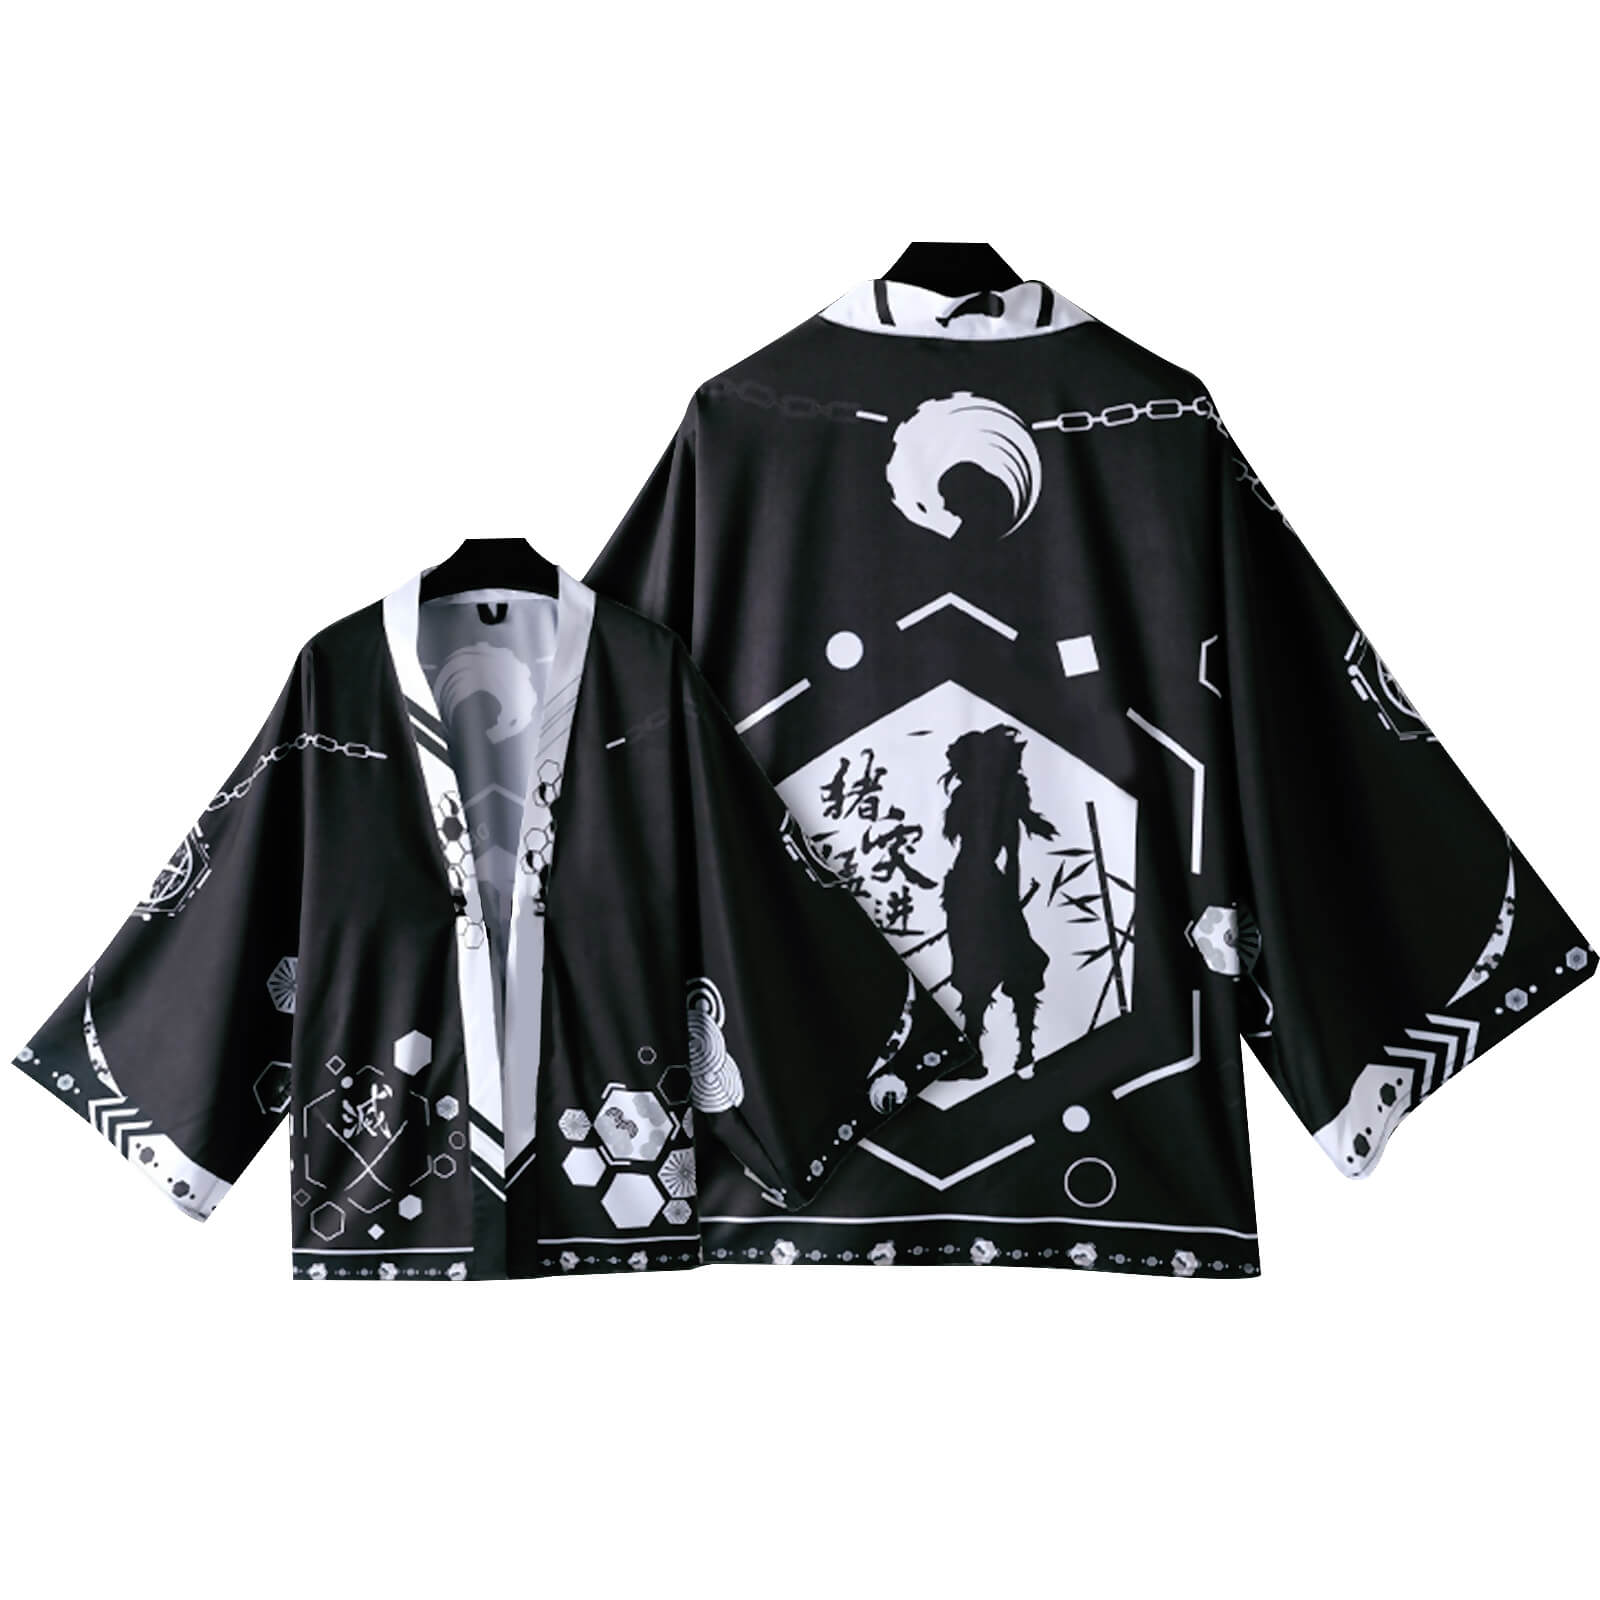 Kids Demon Slayer Kimono Haori Coat Kimetsu no Yaiba Characters Cosplay Costume